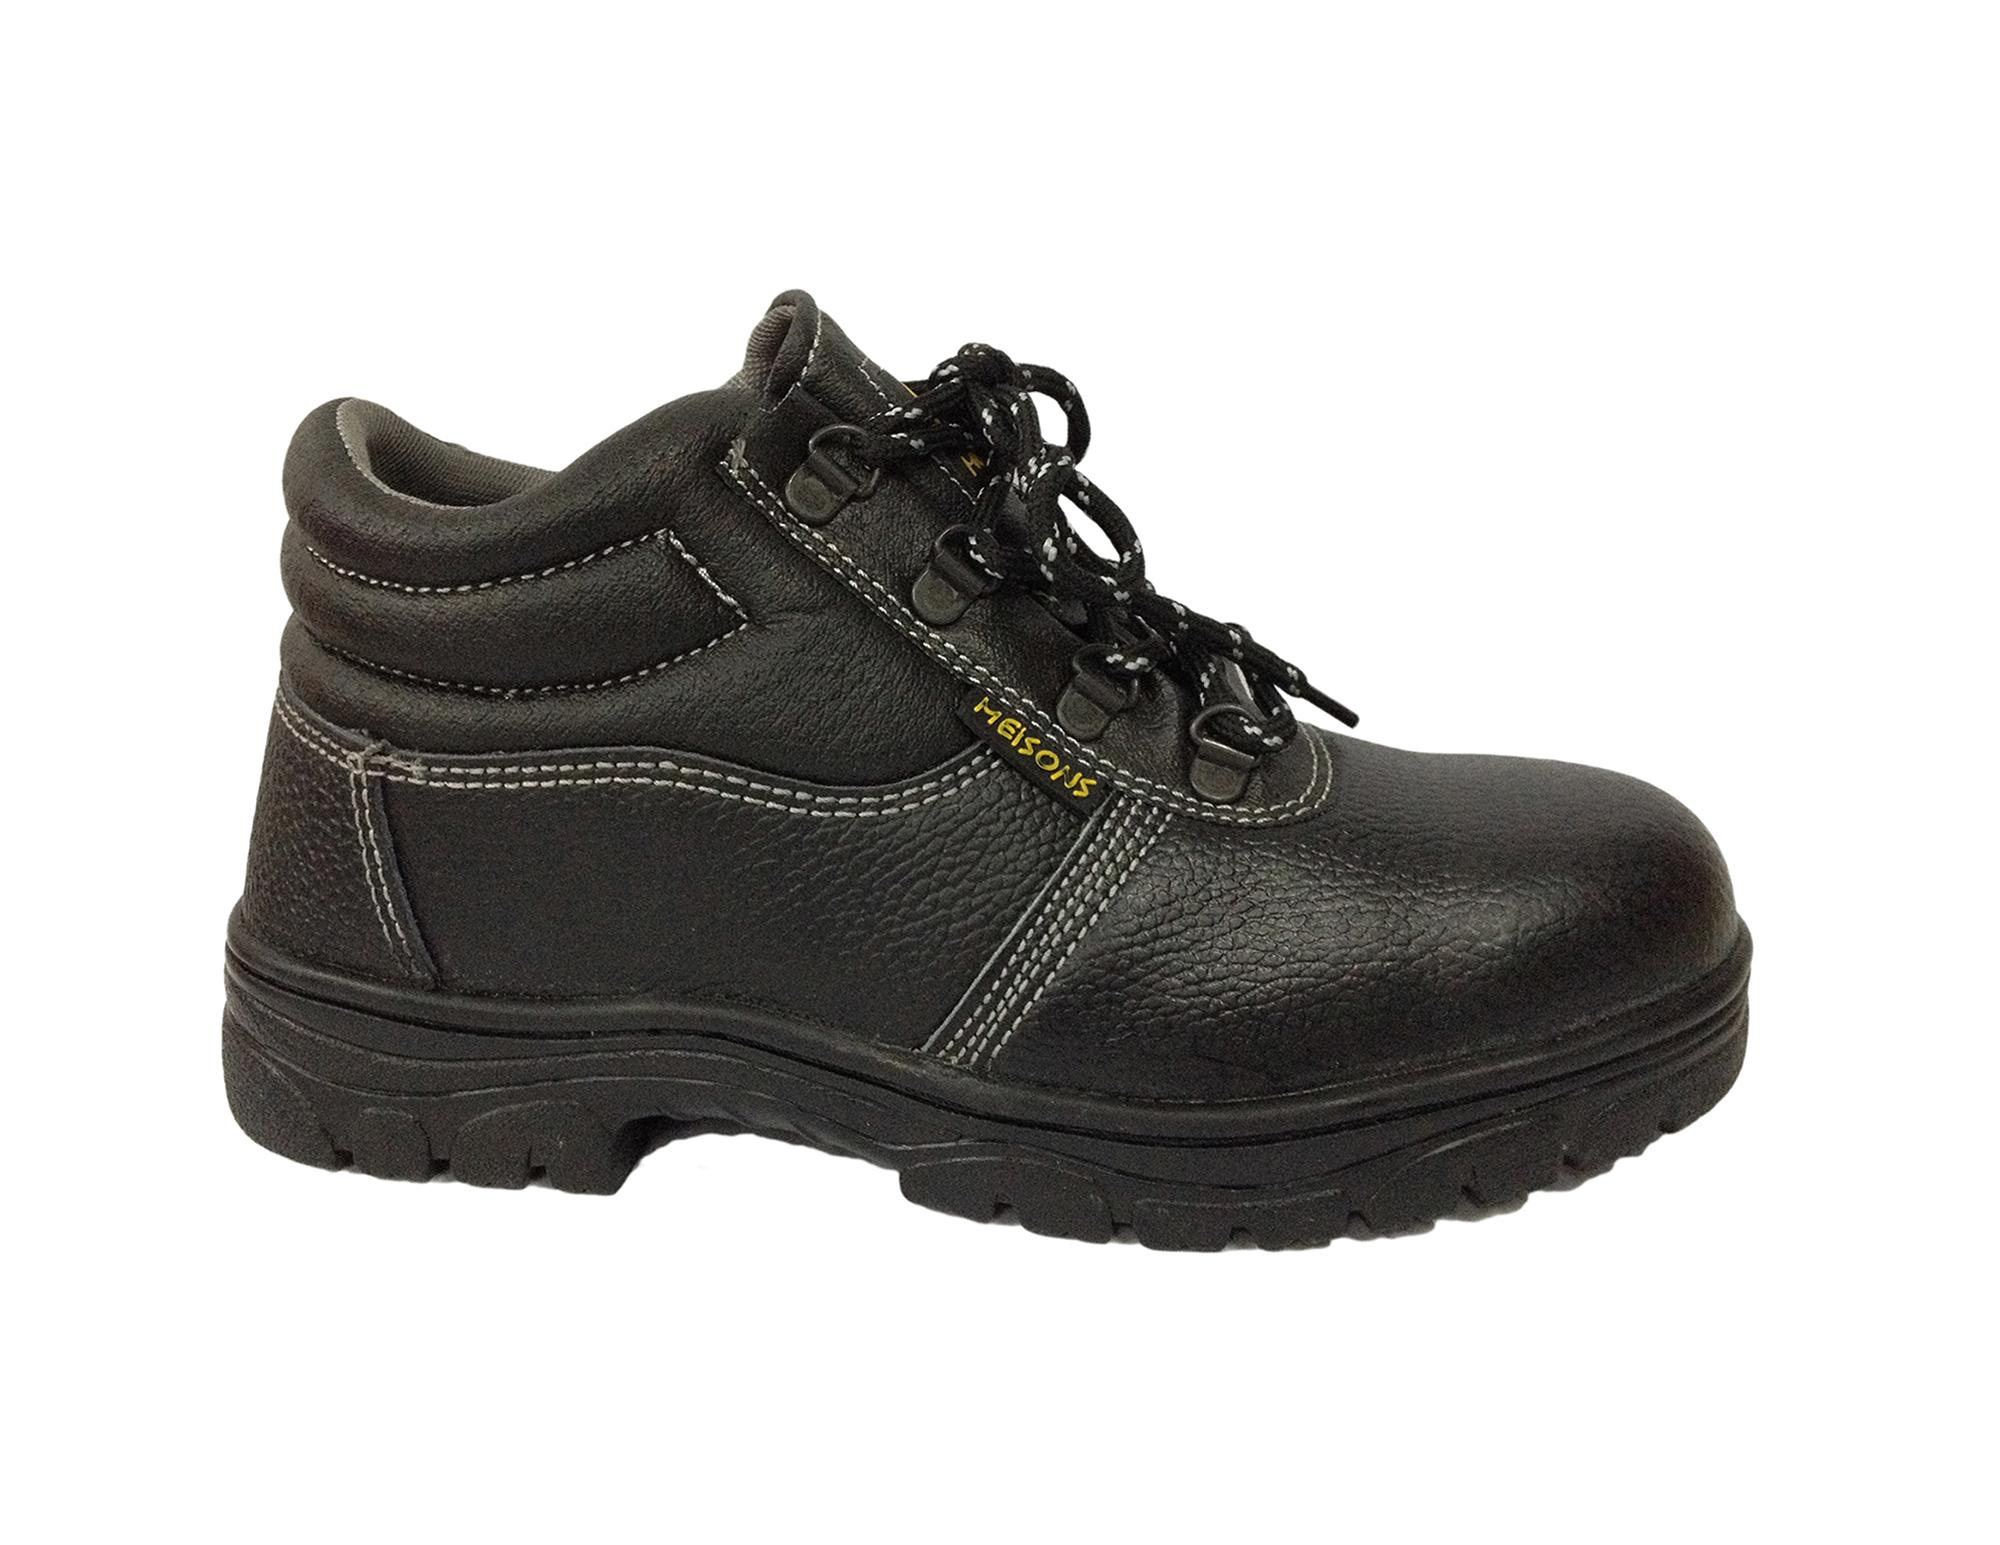 Meisons Safety Shoes Hi Cut Eur 44 With Steel Toe By Meisons Equipments.